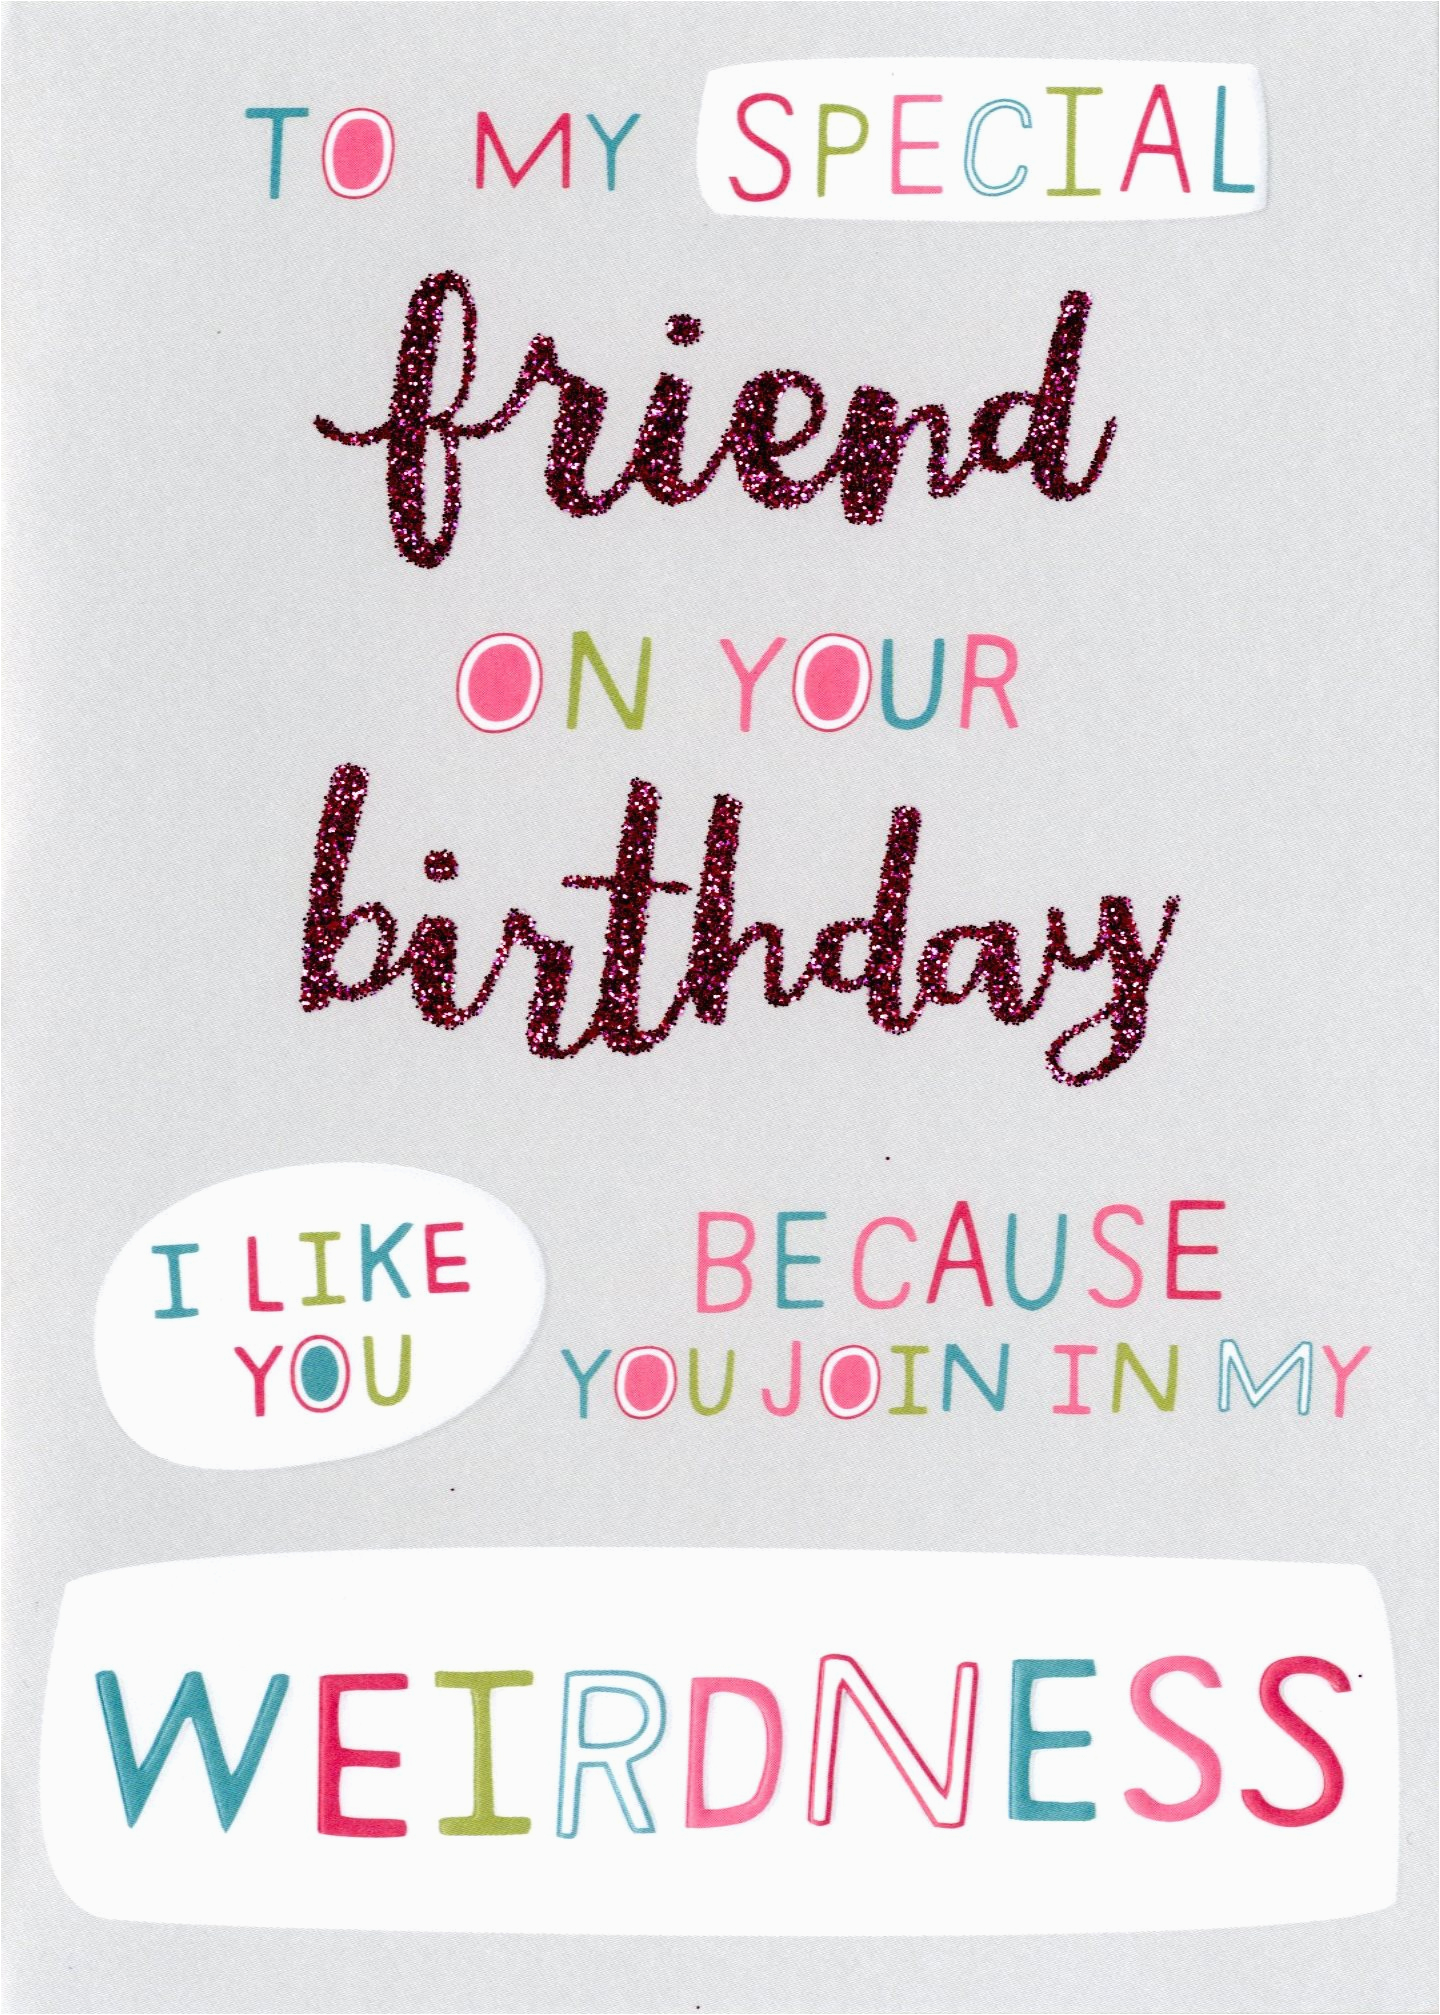 What To Say To A Friend In A Birthday Card Birthdaybuzz